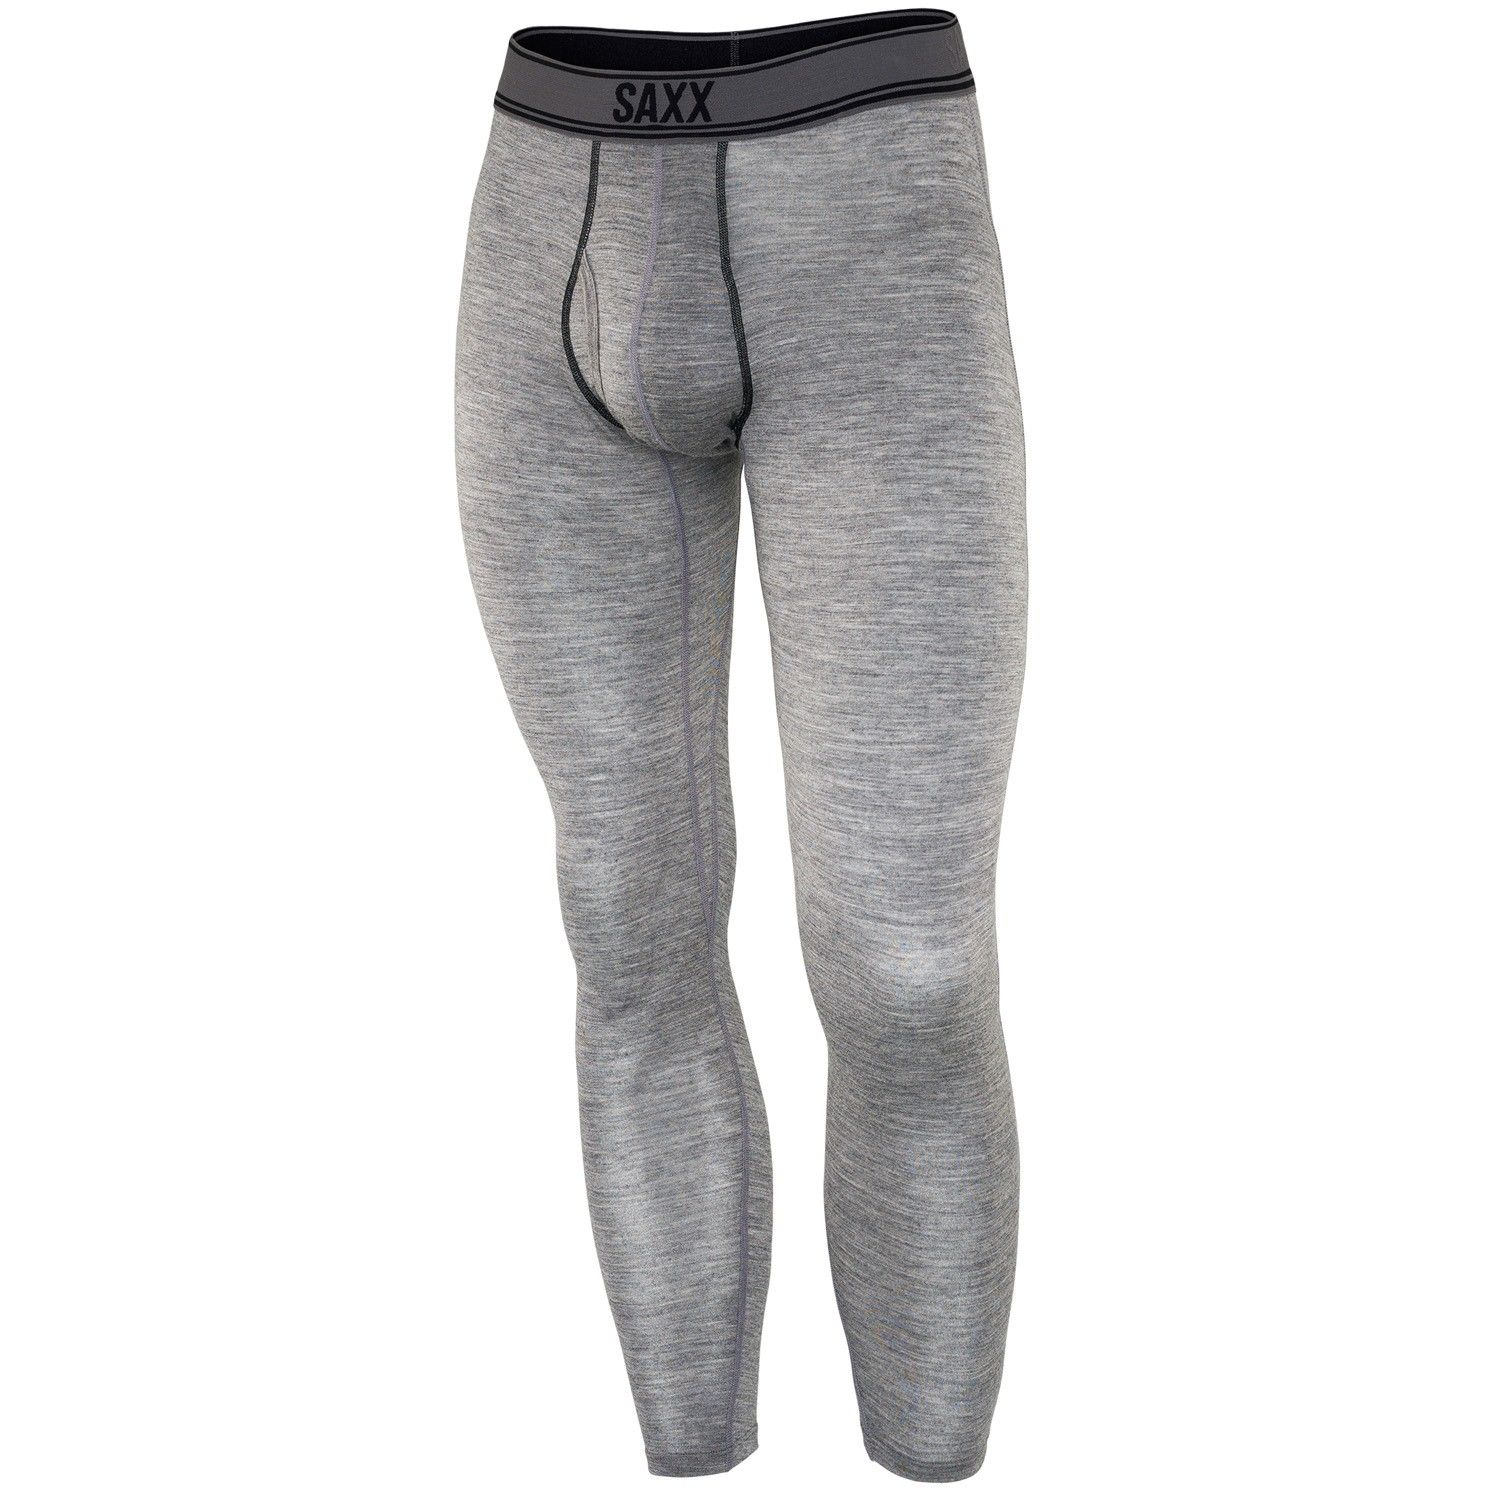 armor long underwear